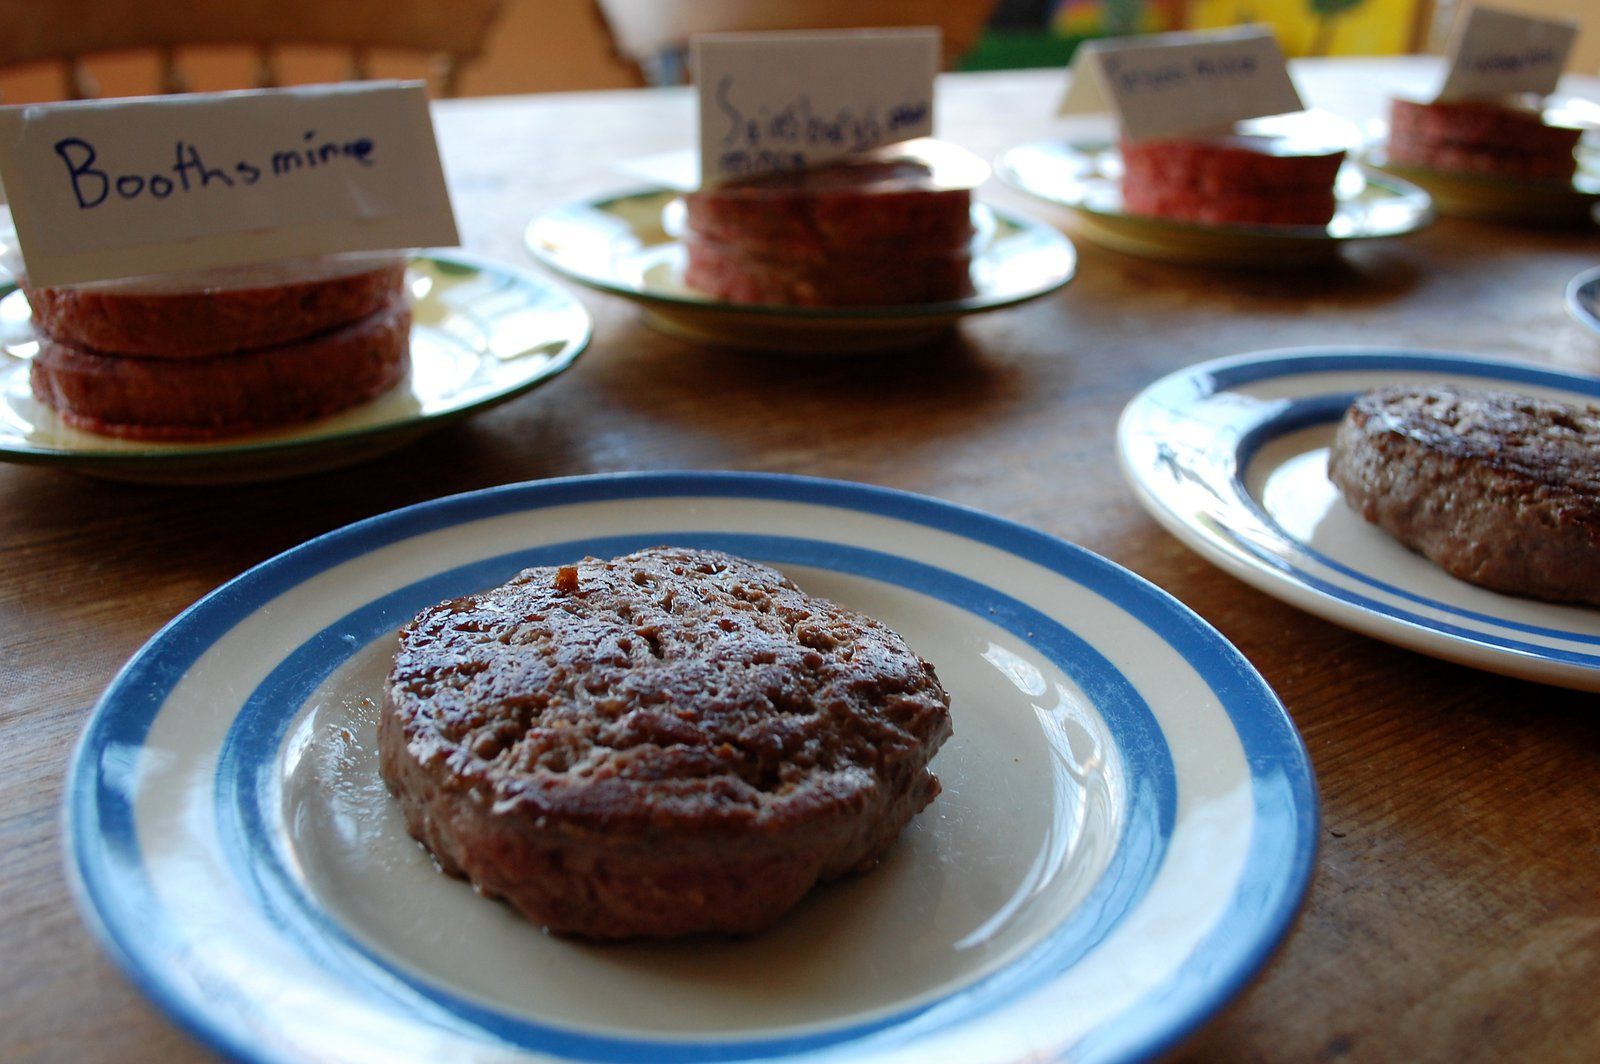 Tasting Beefburgers Made From Supermarkets' Steak